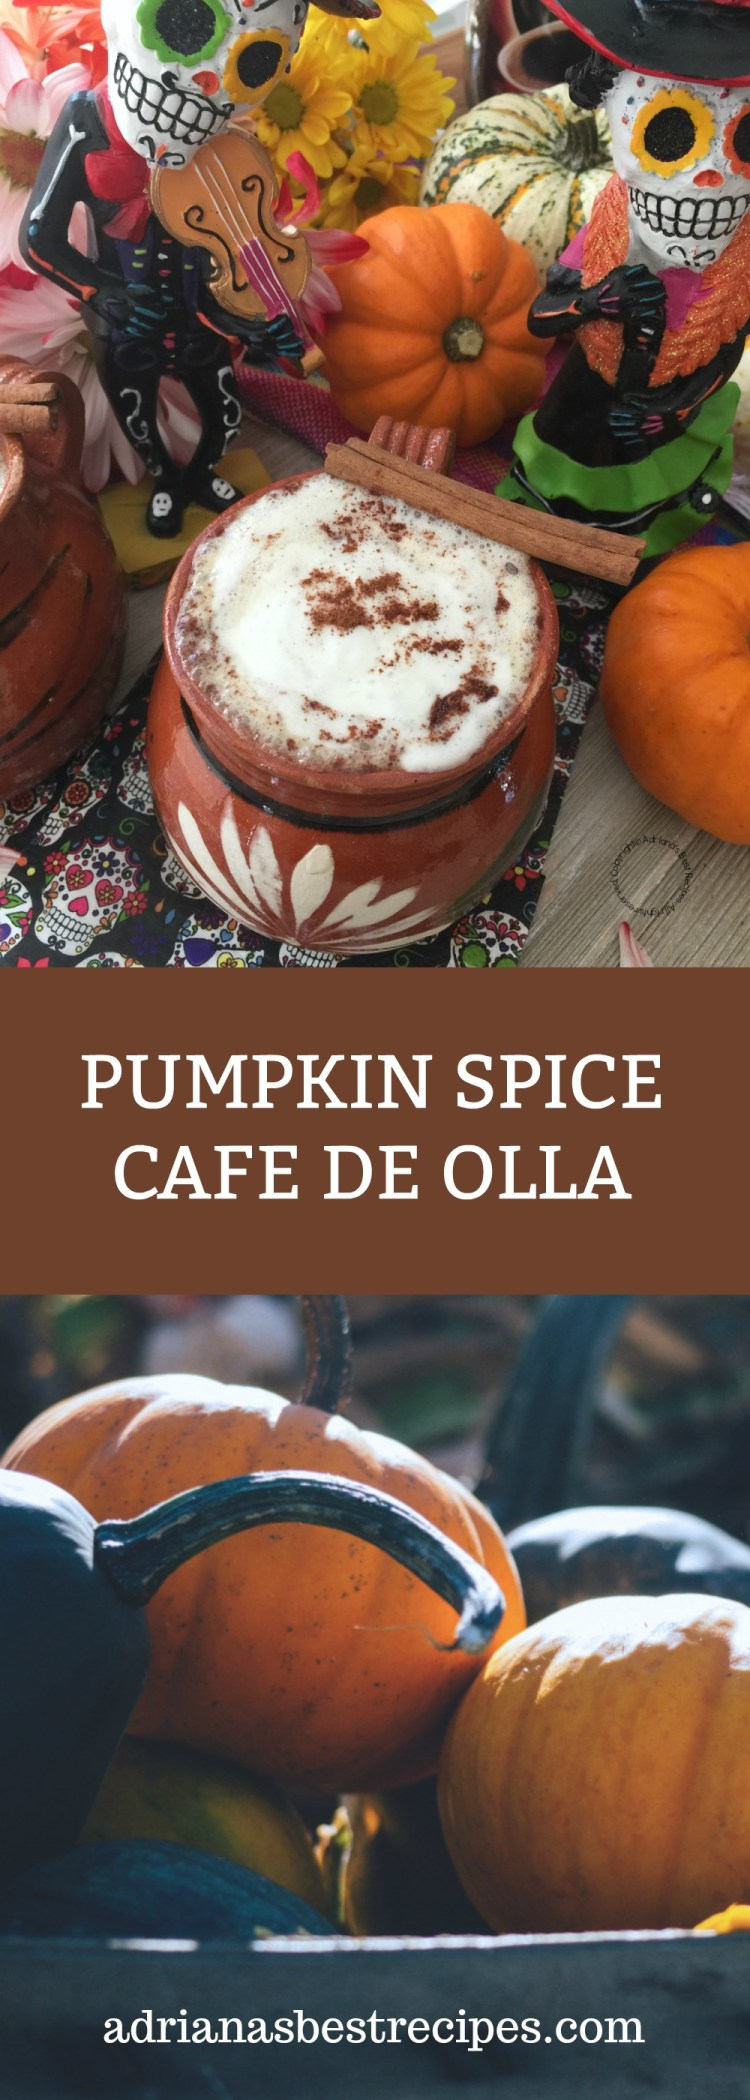 The Pumpkin Spice Cafe de Olla is inspired by the Pumpkin Spice Caffe Latte but with a Mexican touch. A yummy option for the Day of the Dead feast